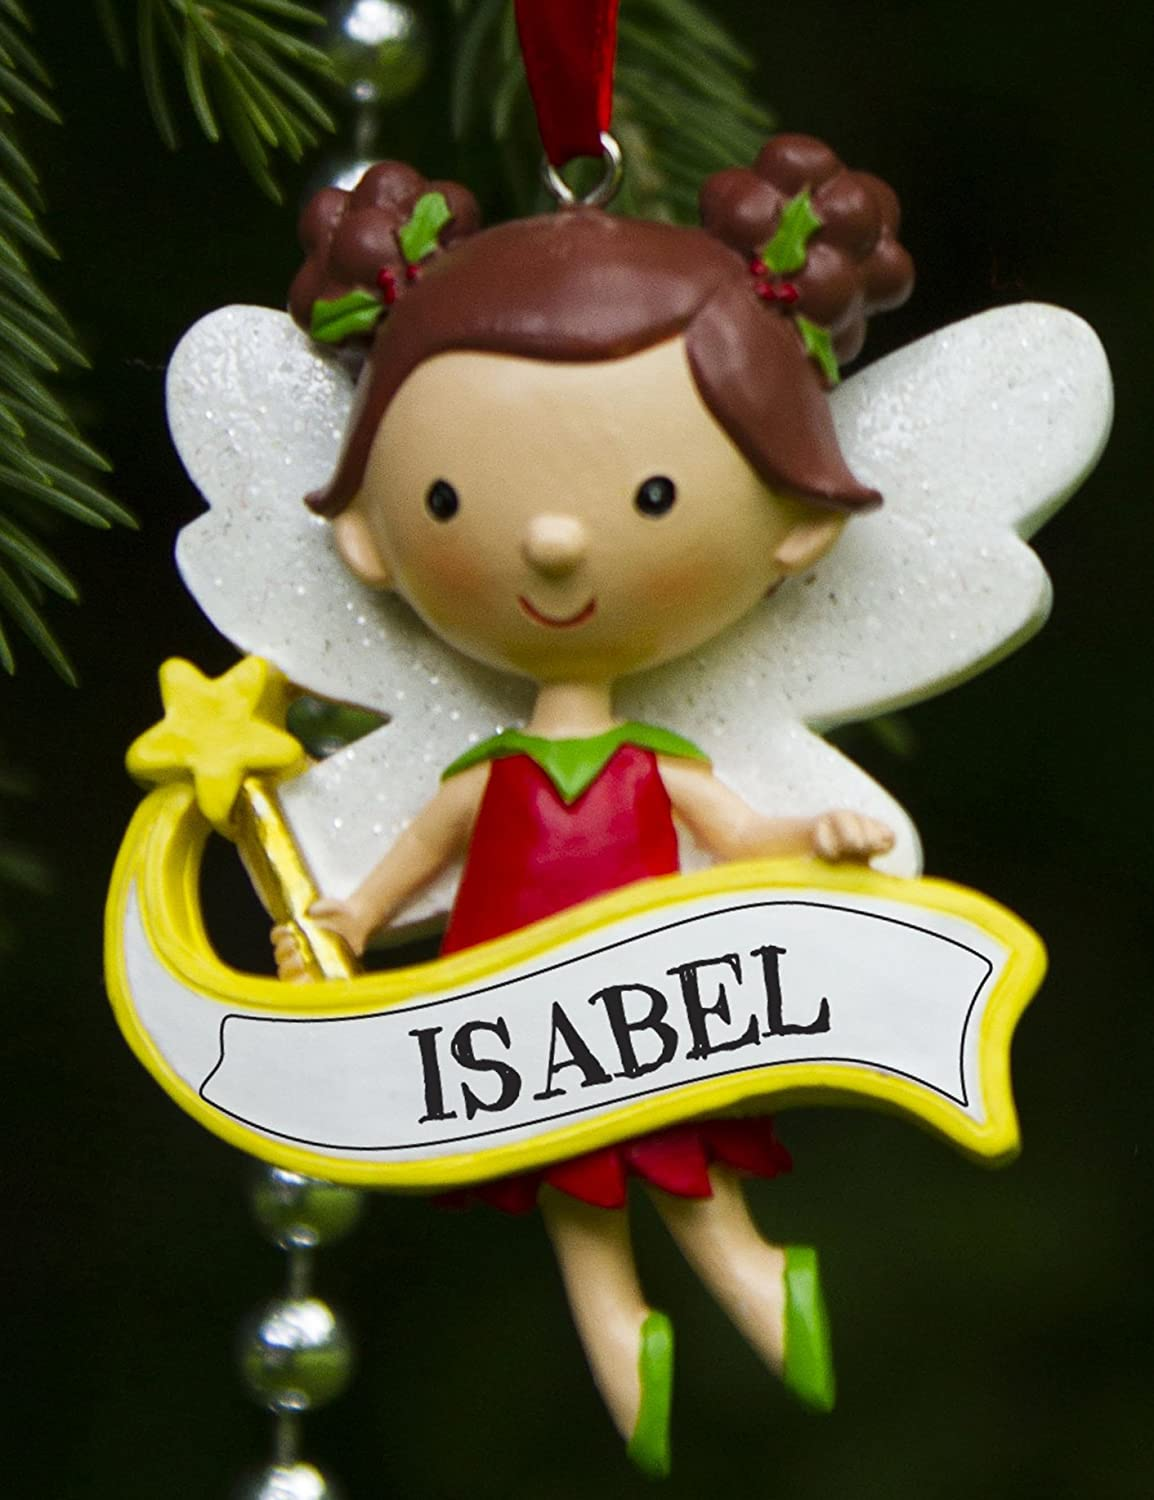 Boxer Gifts Isabel Fairy Decoration Ceramic 7.2 x shopping Multi-Colour Bombing free shipping